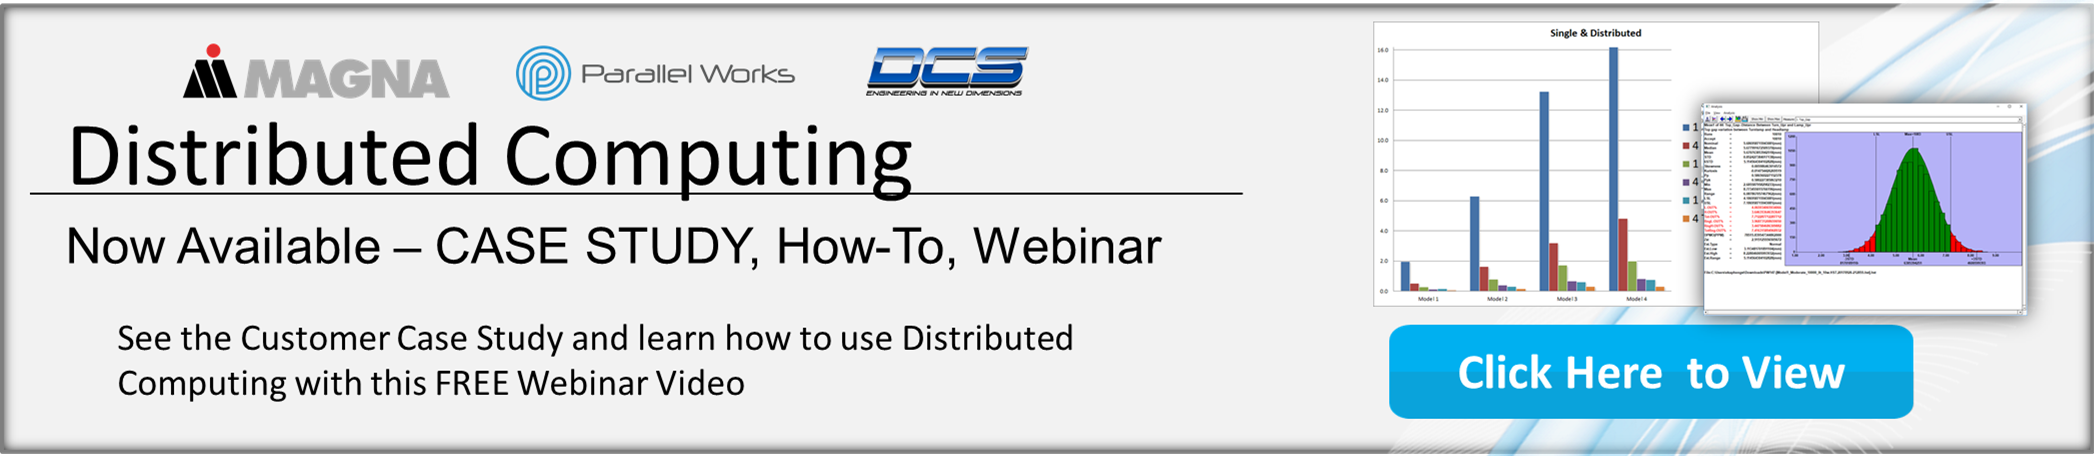 Now Available! Distributed Computing in the Cloud